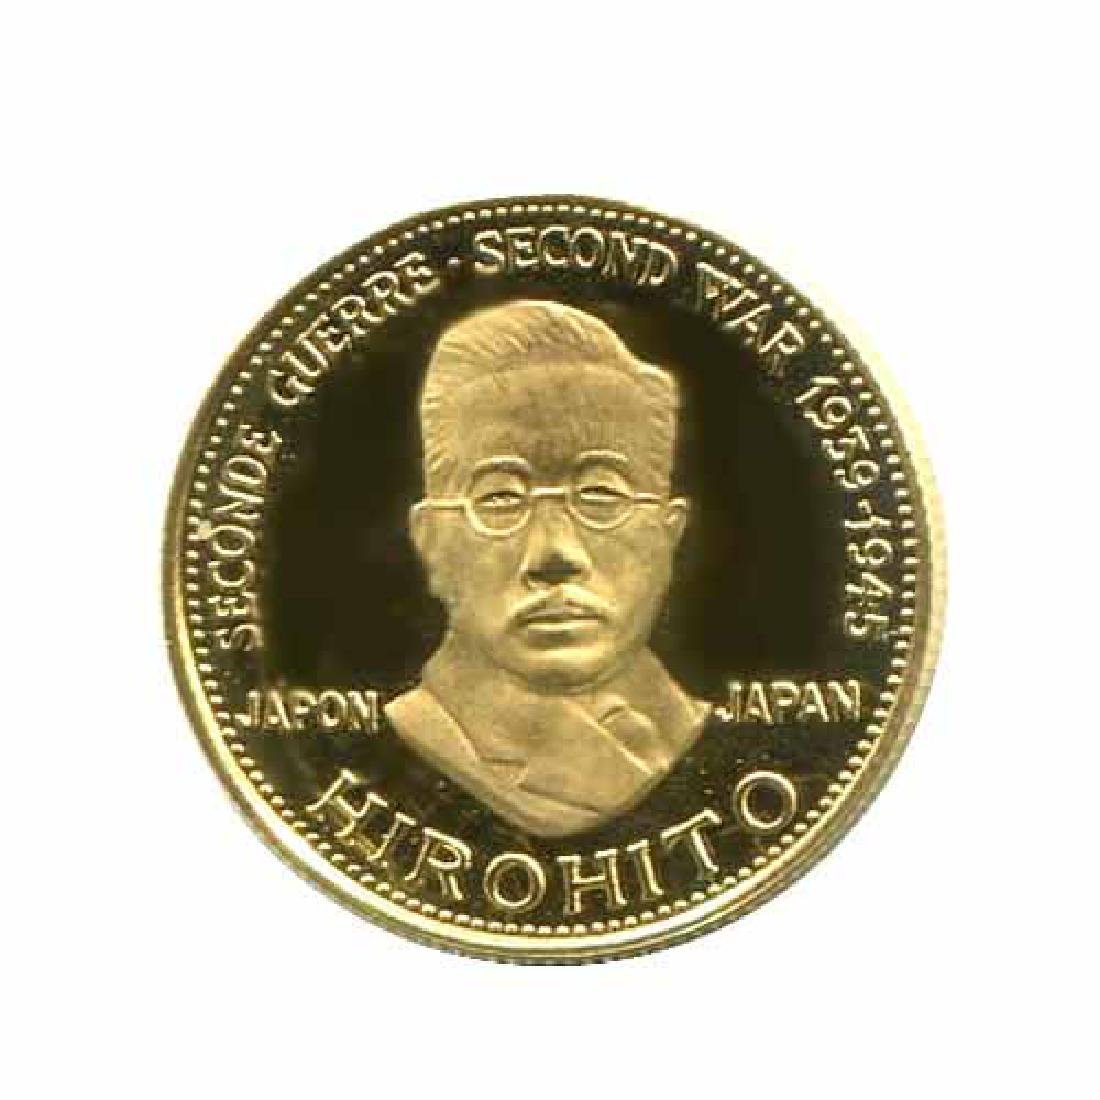 WWII Commemorative Proof Gold Medal 7g. 1958 Hirohito